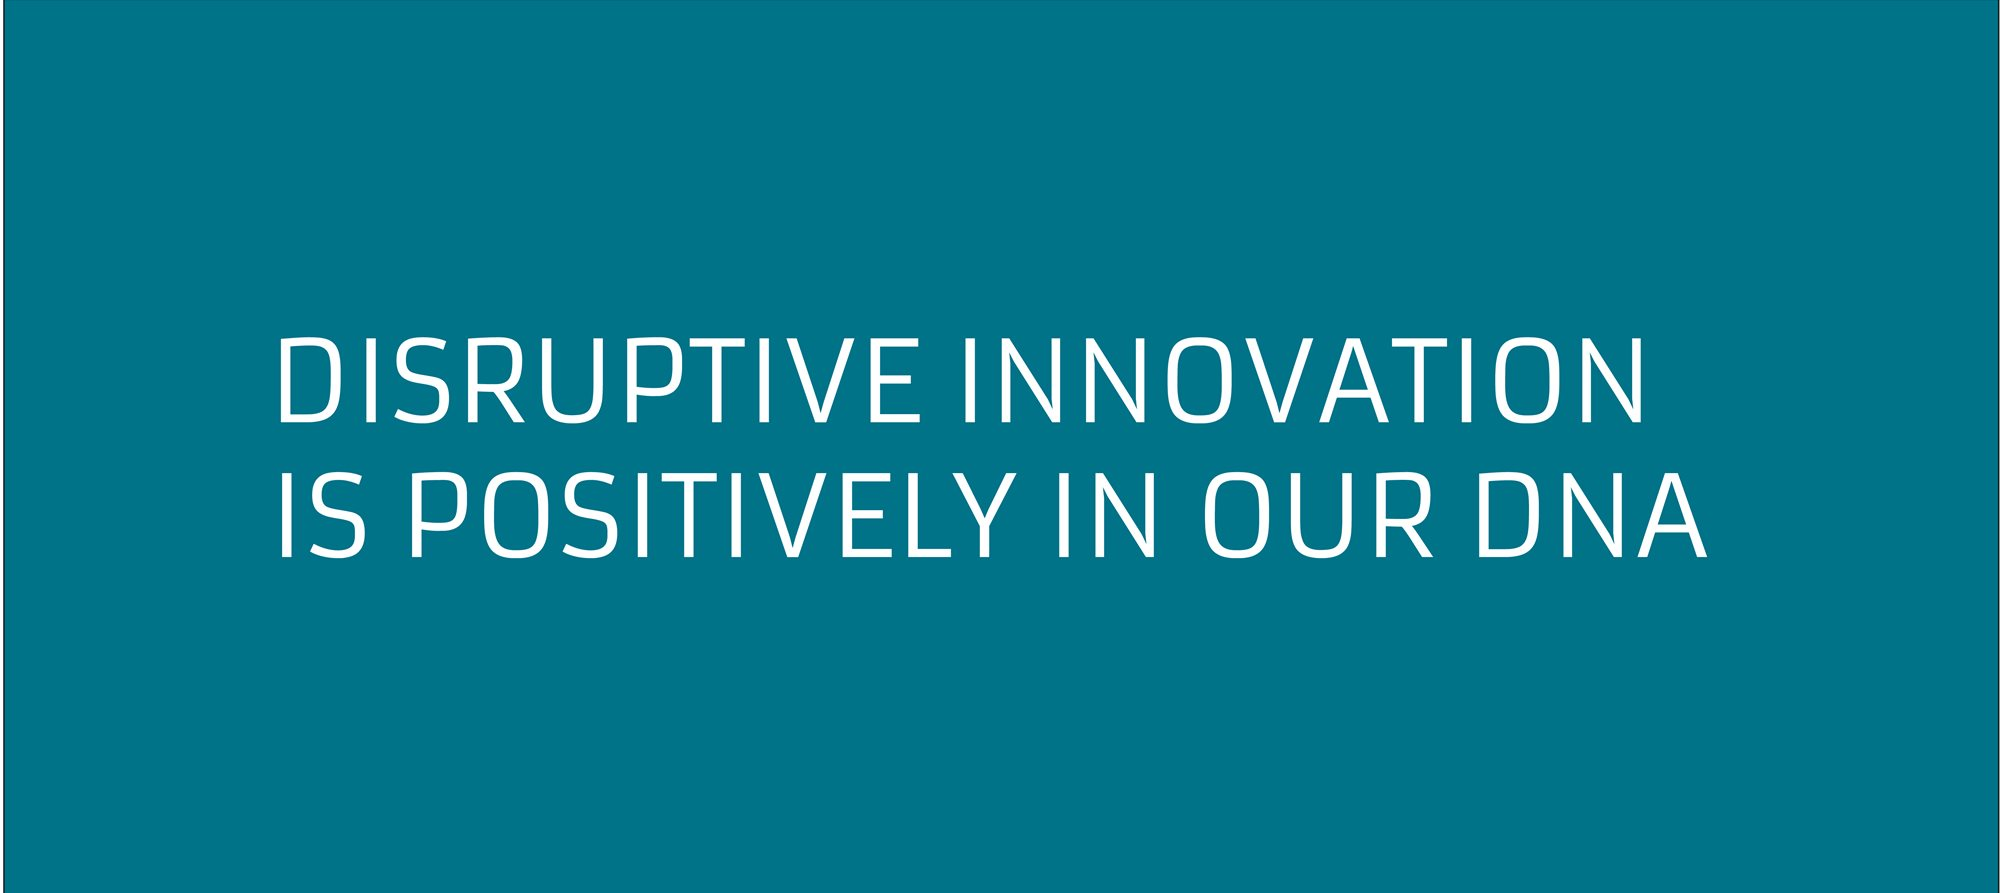 Disruptive Innovation is Positively in our DNA